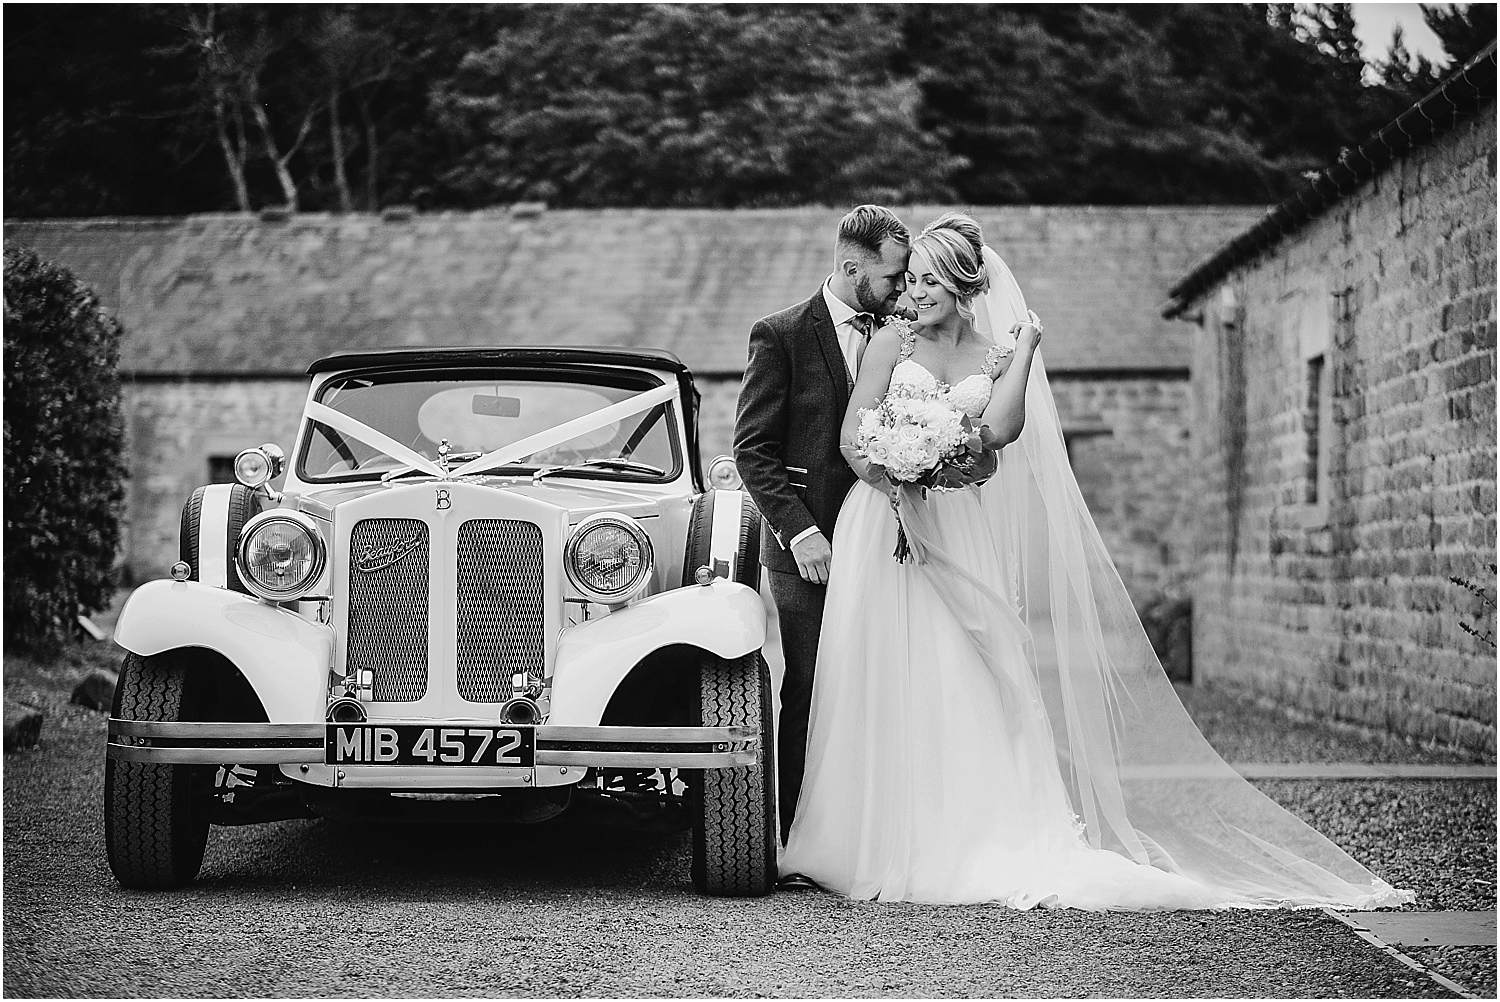 Wedding at Healey Barn - wedding photography by www.2tonephotography.co.uk 054.jpg